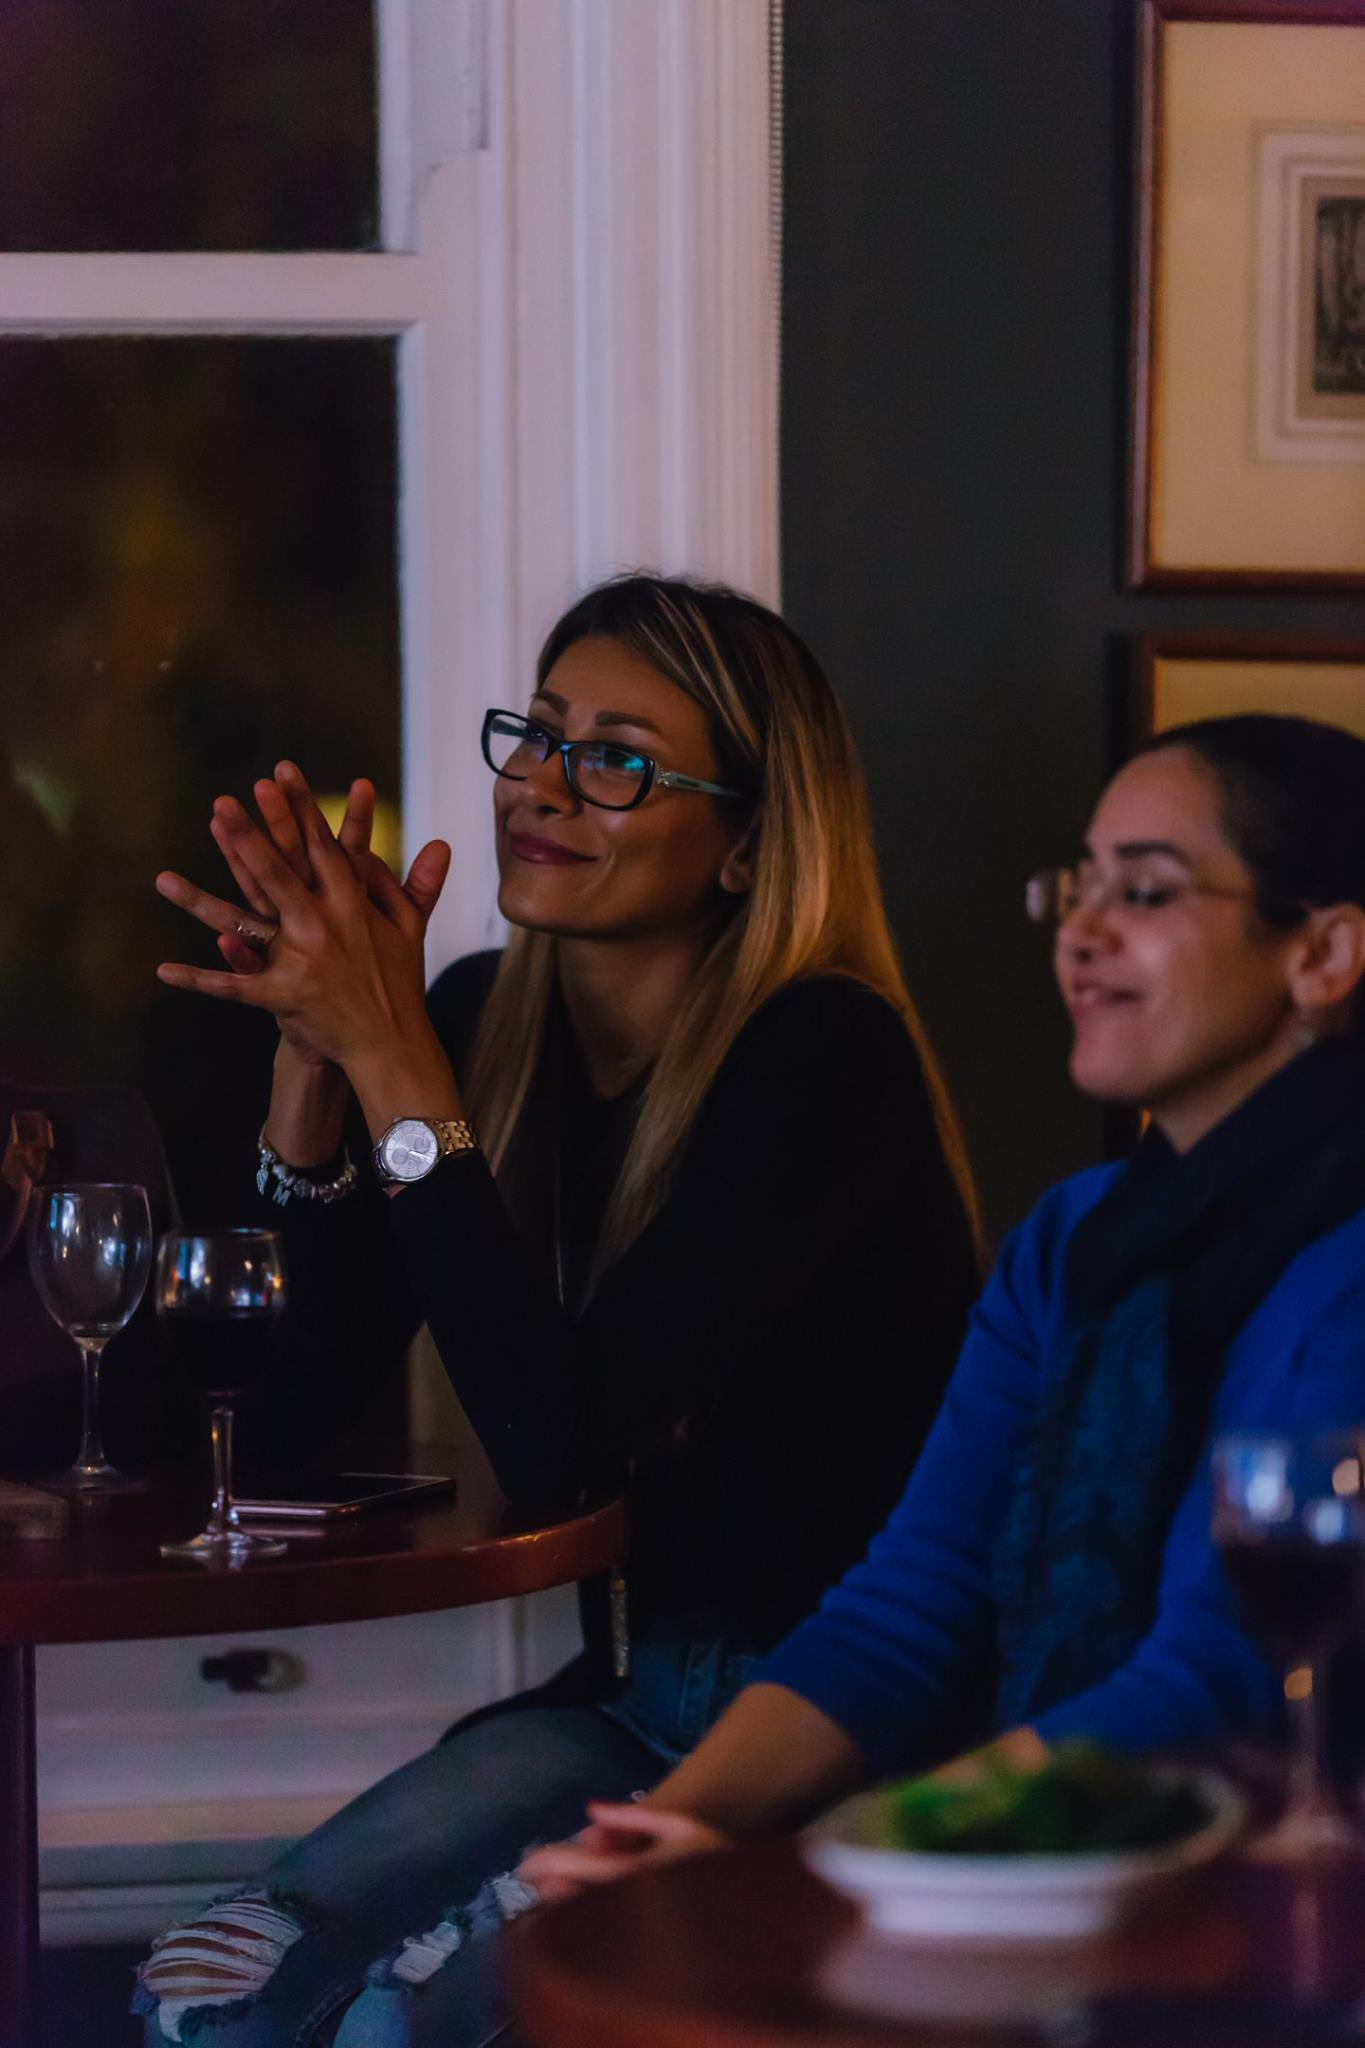 Captivated, at our Creative Mama Evening Talk, 'The Power of Creativity During Times of Adversity' featuring artist Jasmine Mansbridge.